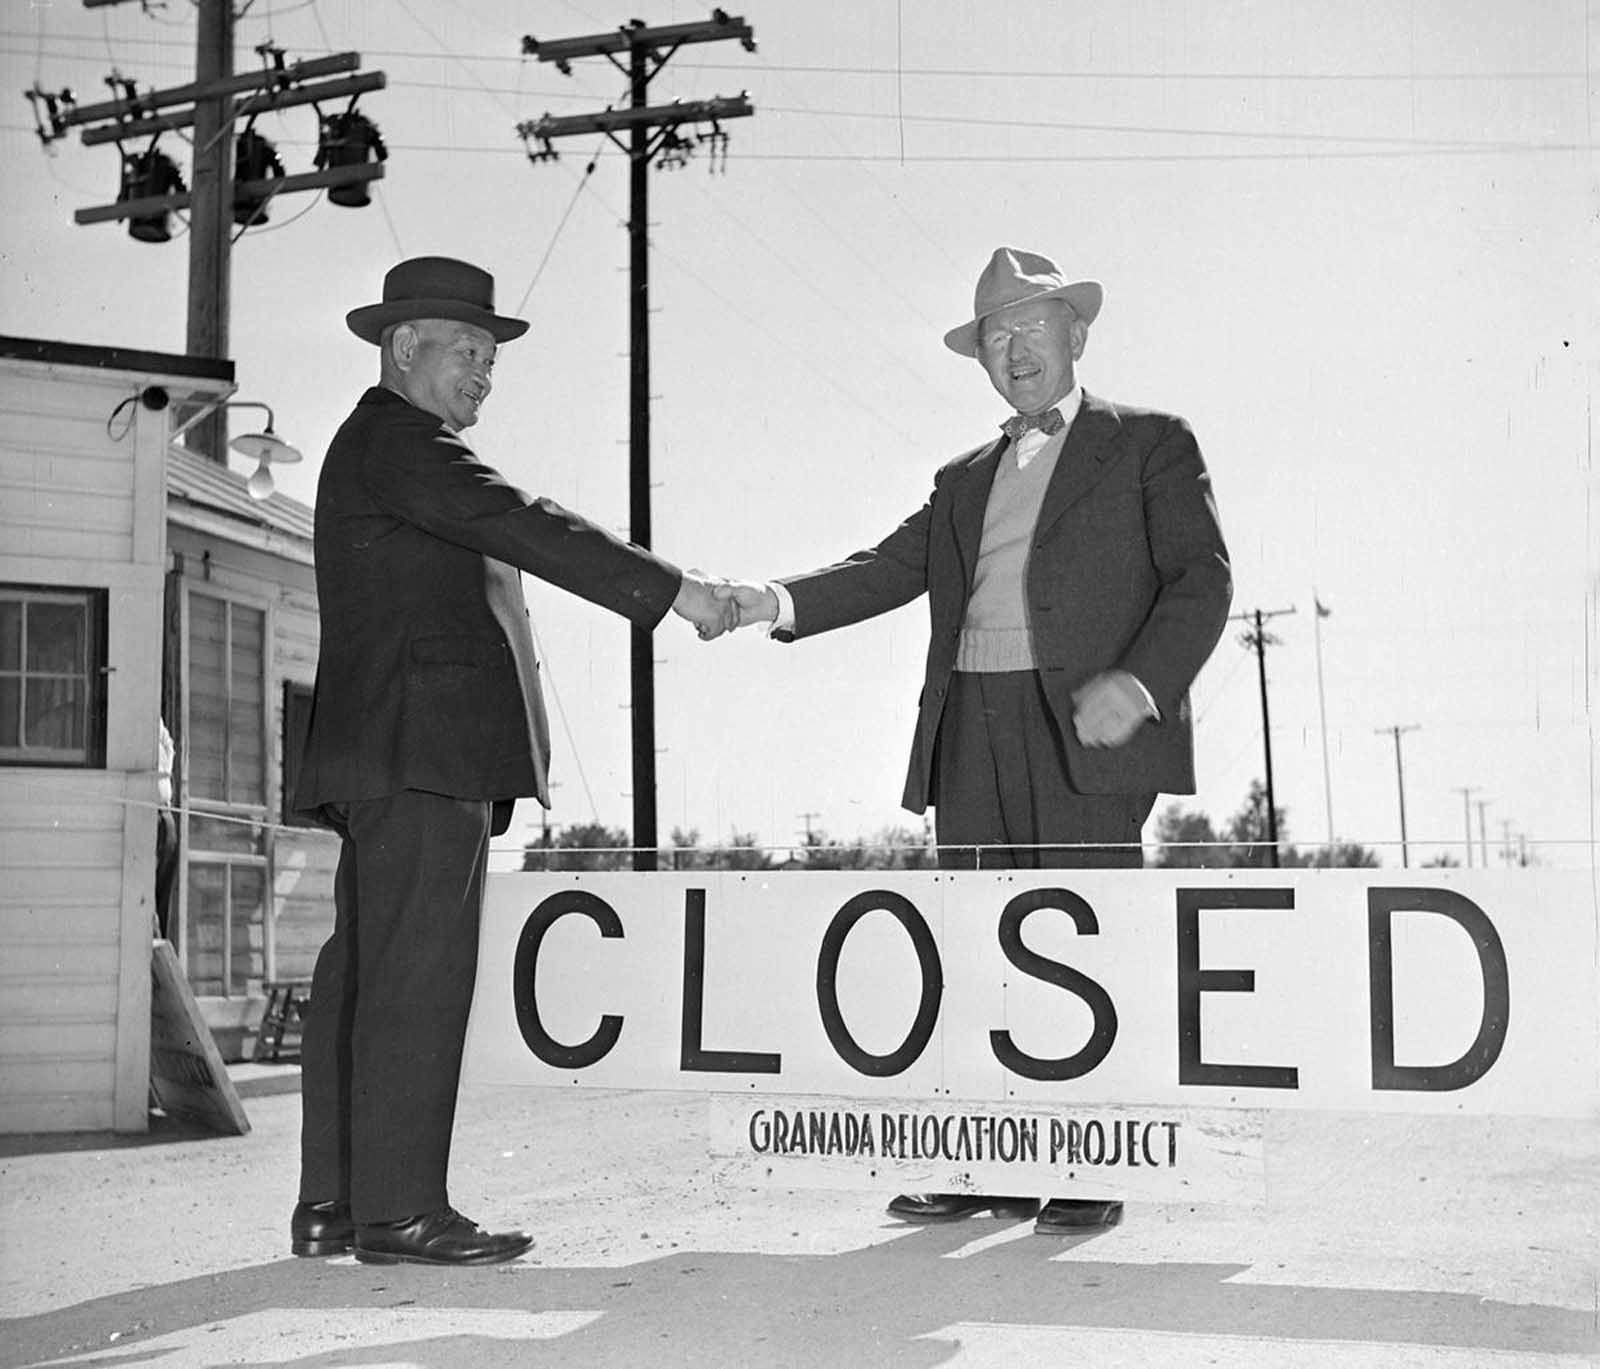 After the orders to relocate and detain persons of Japanese ancestry were rescinded, evacuees began returning home, and camps began to close. Here, Shuichi Yamamoto, the last evacuee to leave the Granada Relocation Center, in Amache, Colorado, says